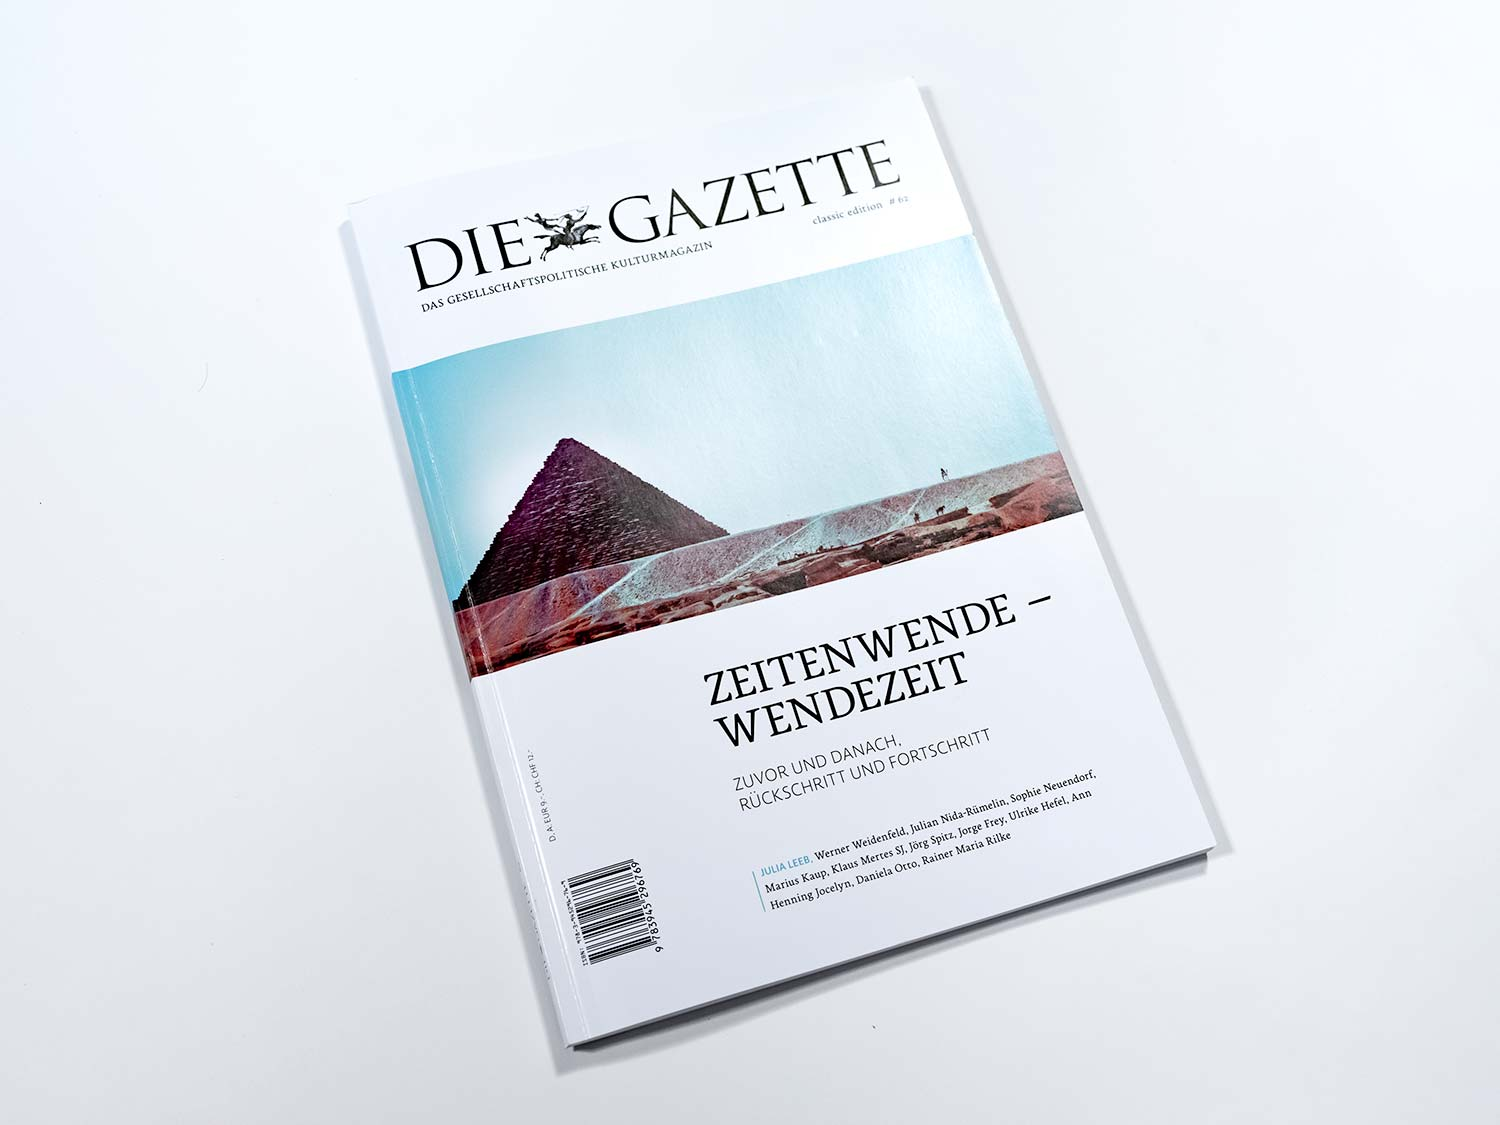 The picture shows the cover of Die Gazette.